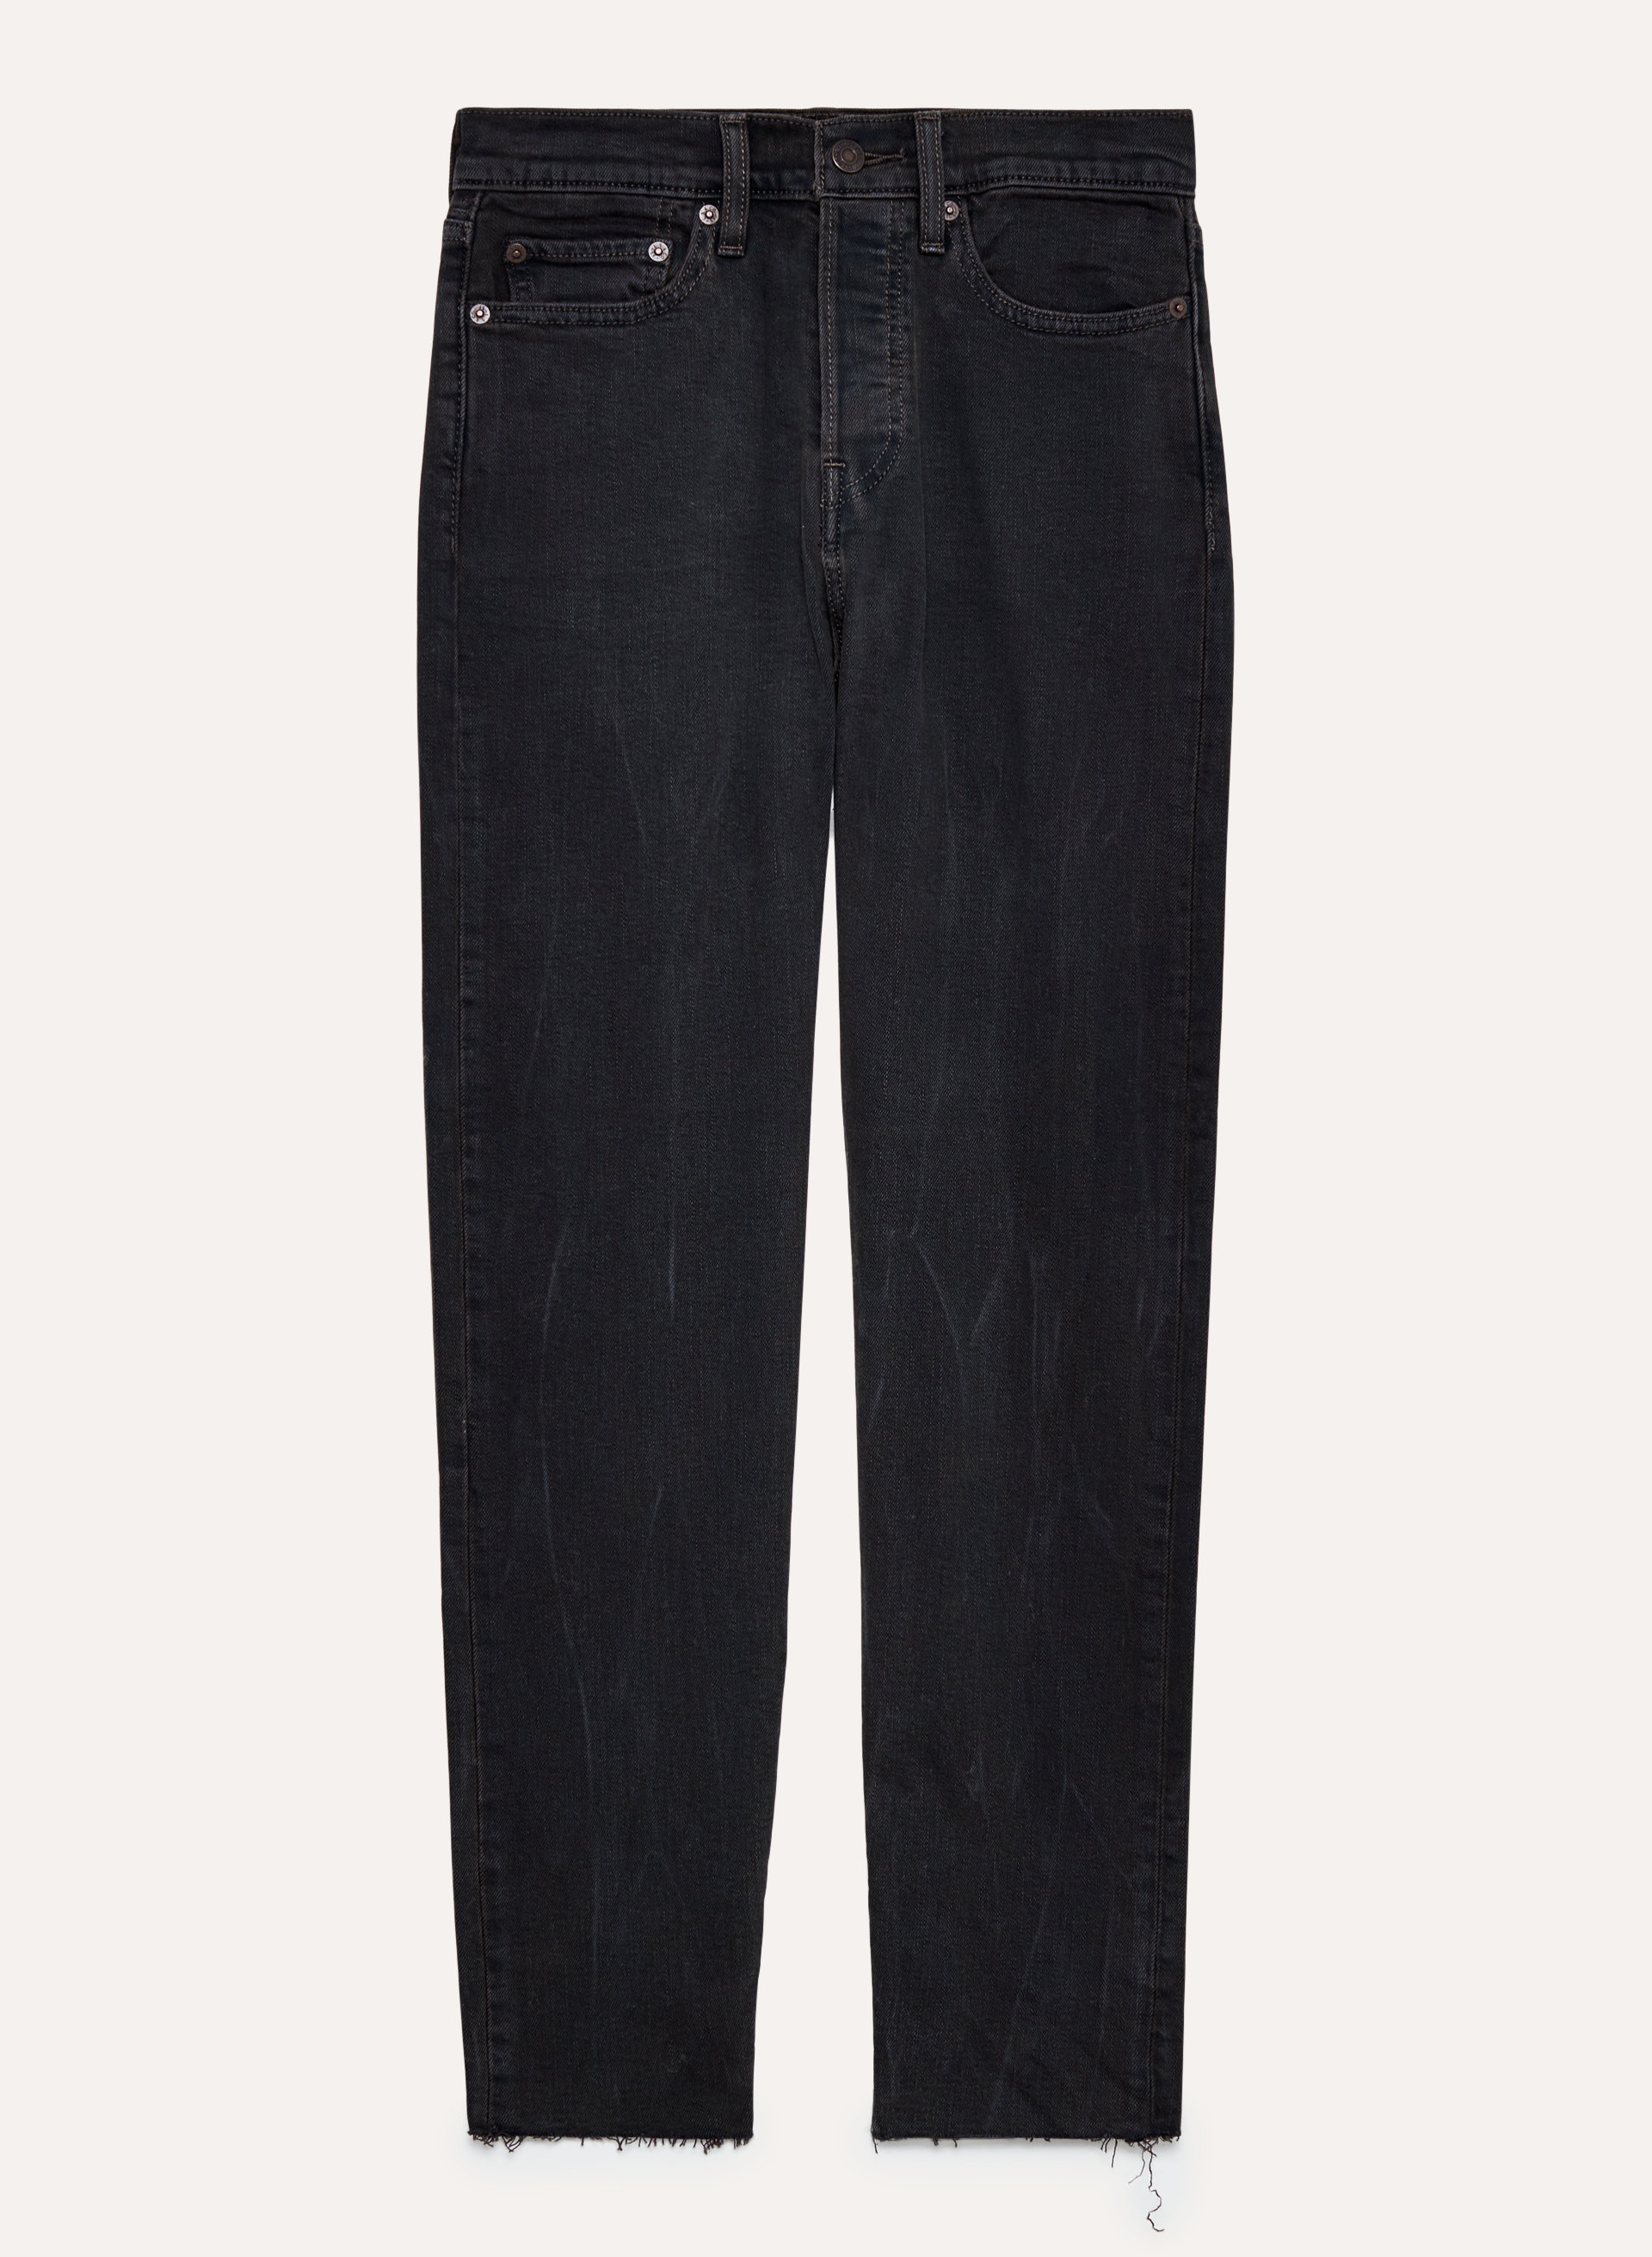 Levi S Wedgie Icon Midnight Aritzia Ca